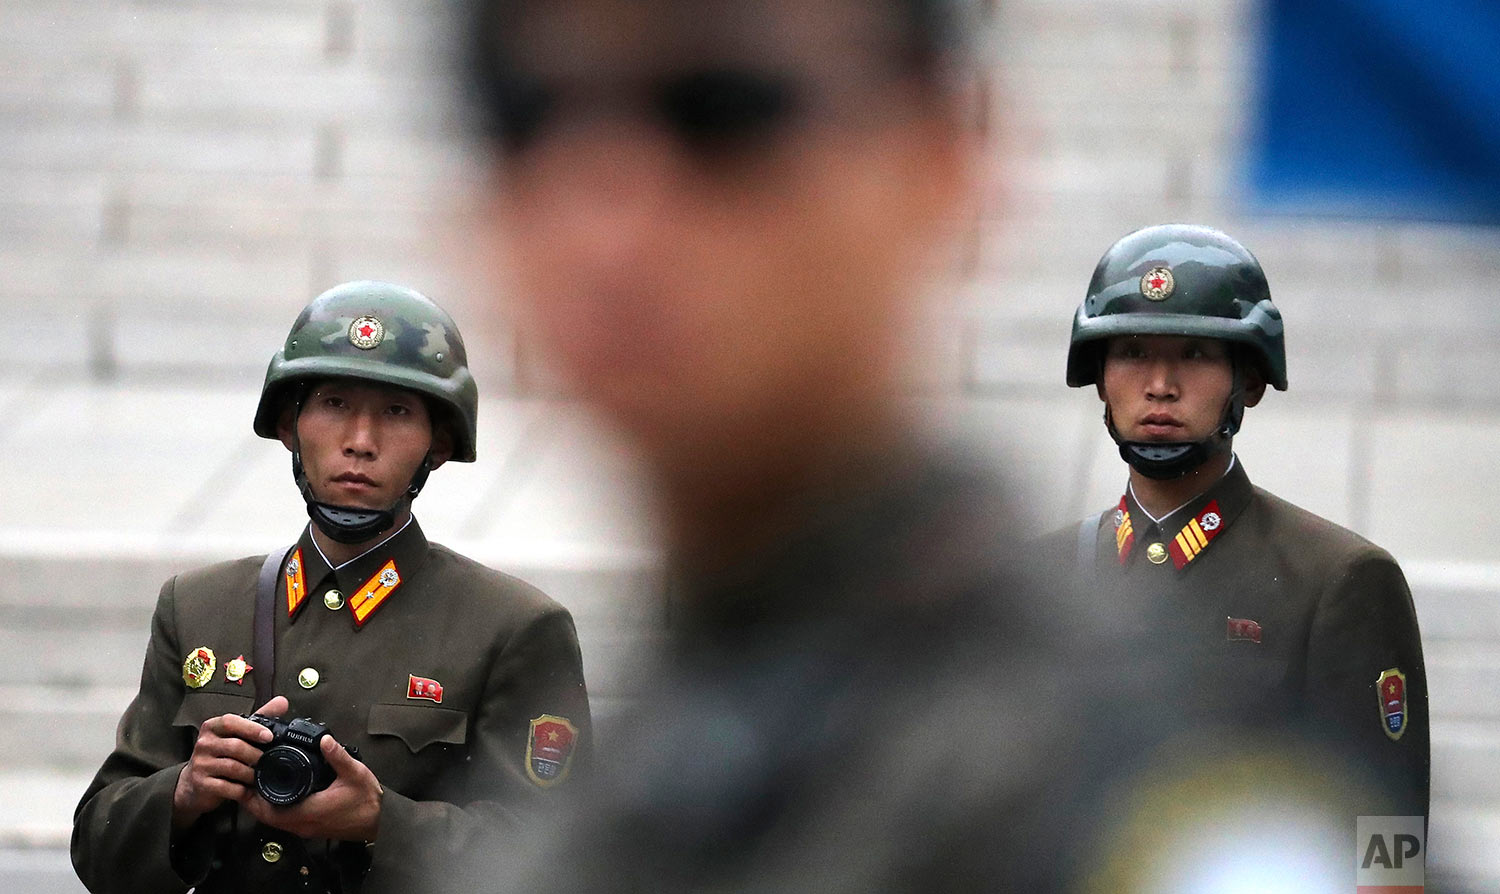 In this Monday, April 17, 2017, photo, two North Korean soldiers look at the south side as a South Korean soldier, center, stand guard while U.S. Vice President Mike Pence visited the border village of Panmunjom which has separated the two Koreas since the Korean War, South Korea. (AP Photo/Lee Jin-man)